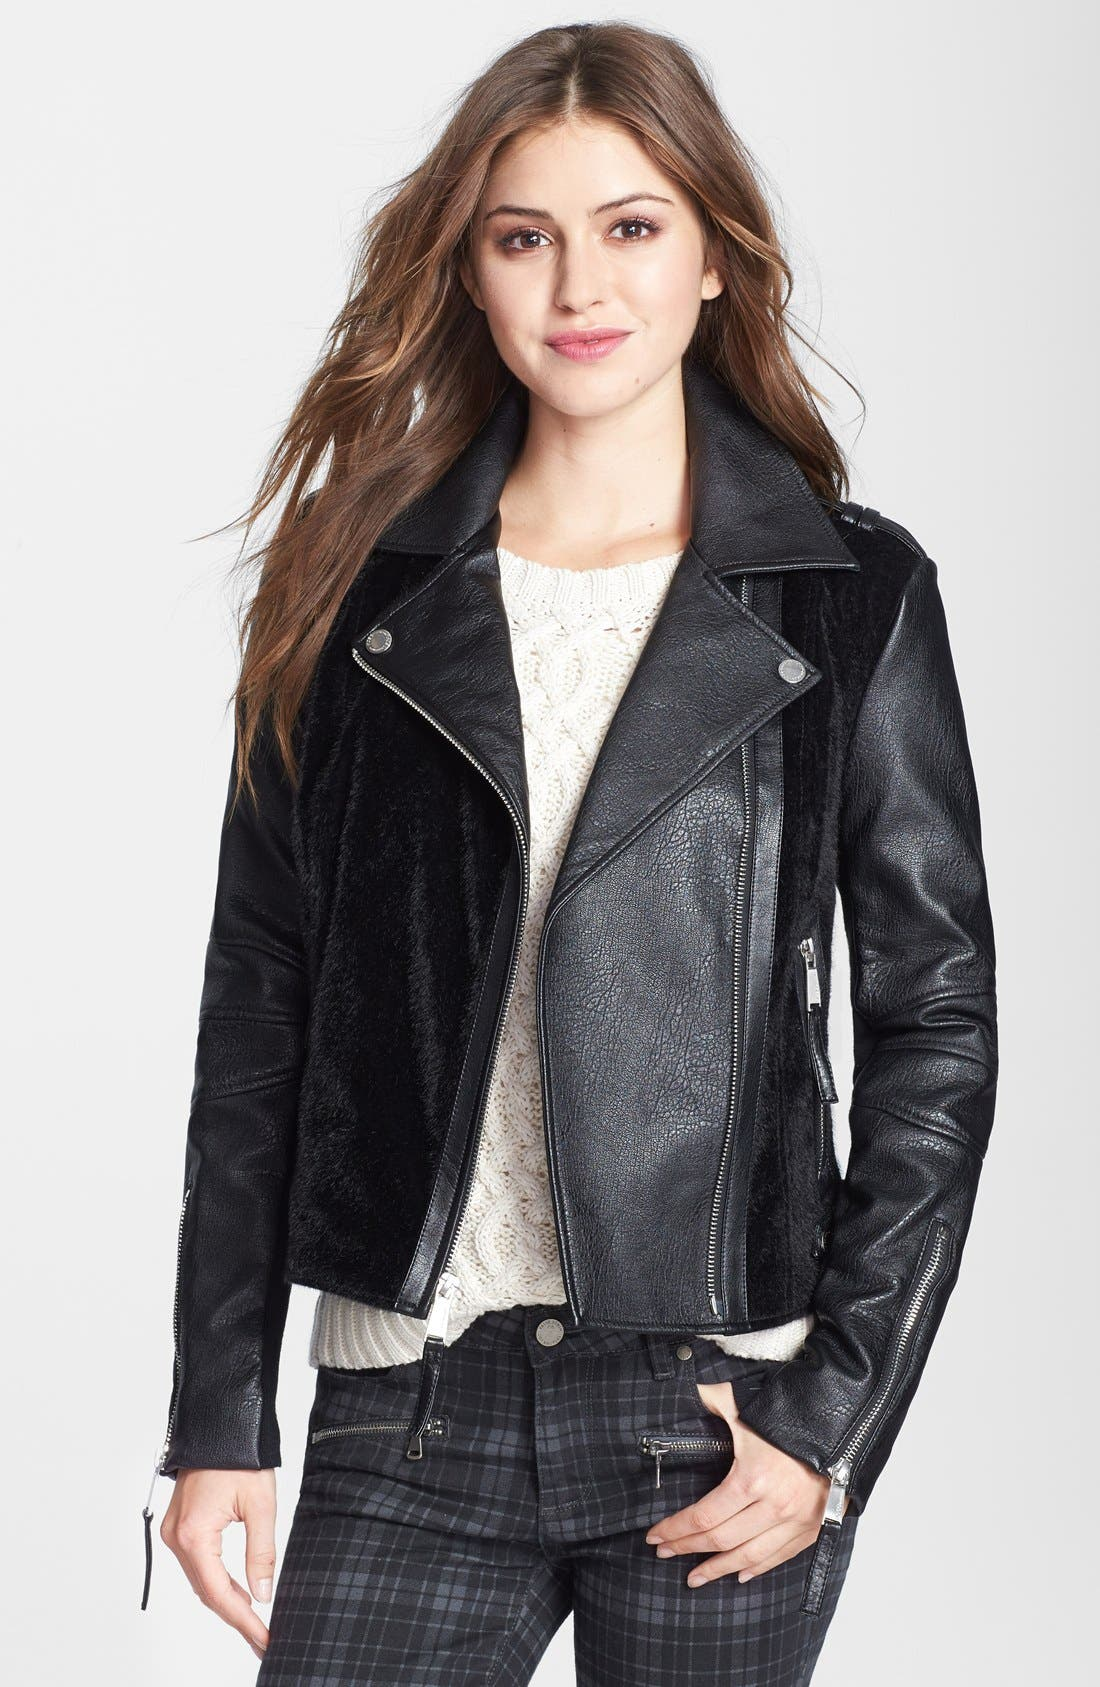 Alternate Image 1 Selected - BCBGeneration Faux Leather & Faux Calf Hair Moto Jacket